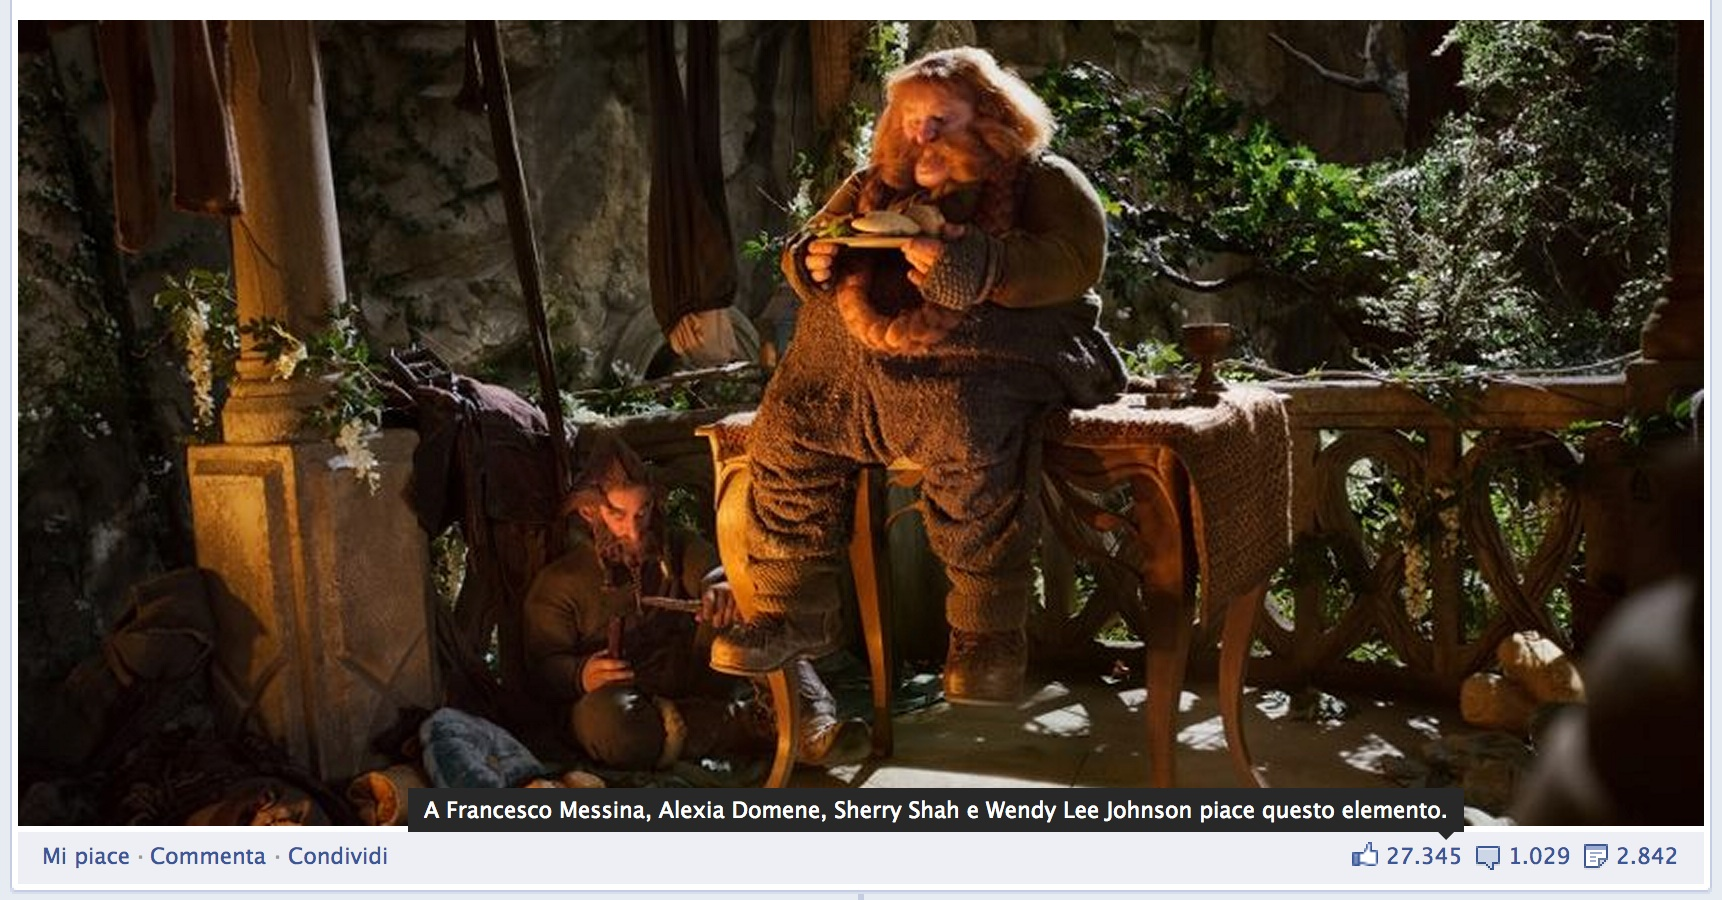 the hobbit movie fan page and the 75th Tolkien anniversary